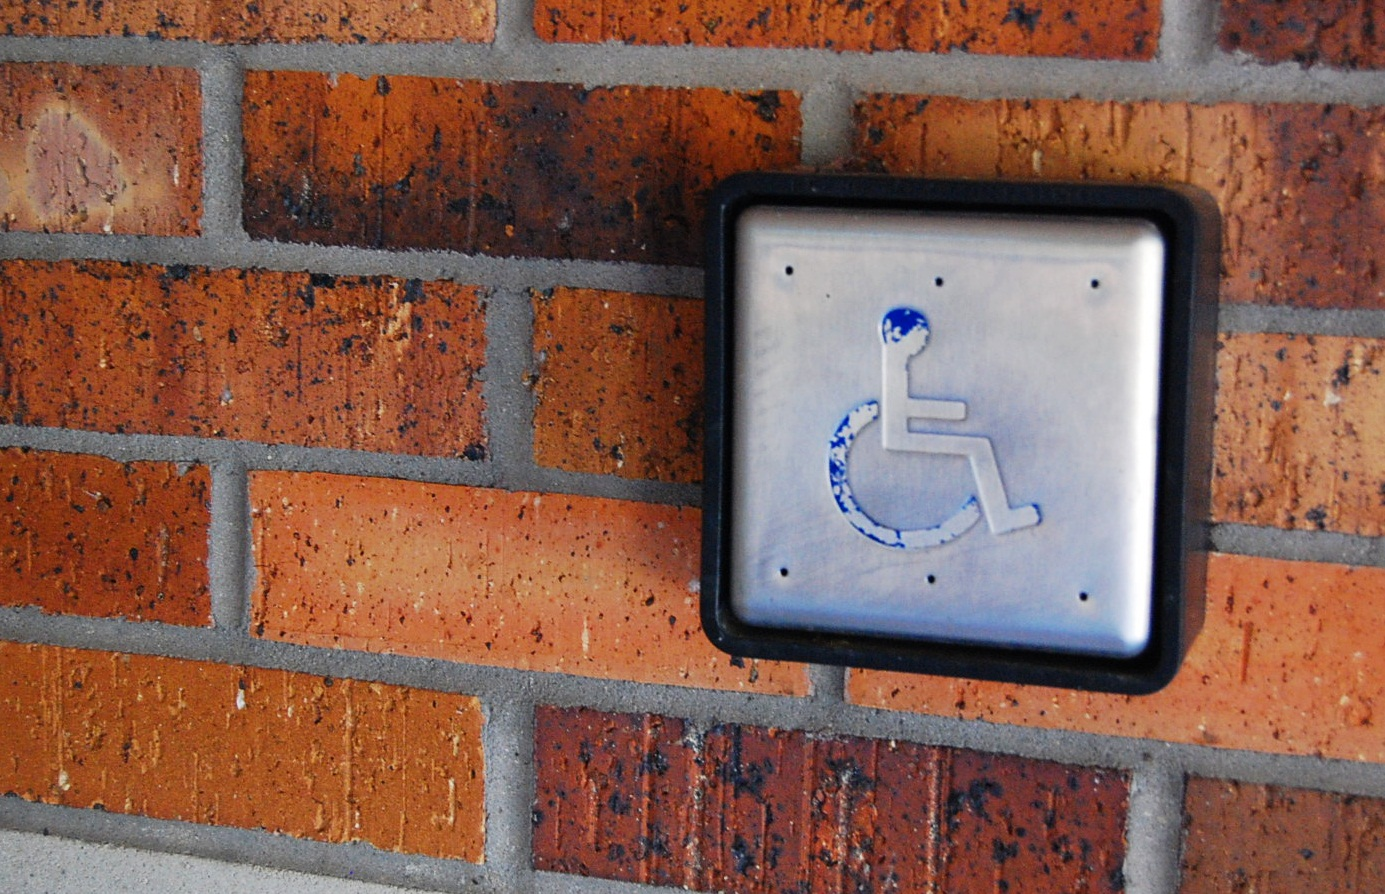 Disability access lacking on campus